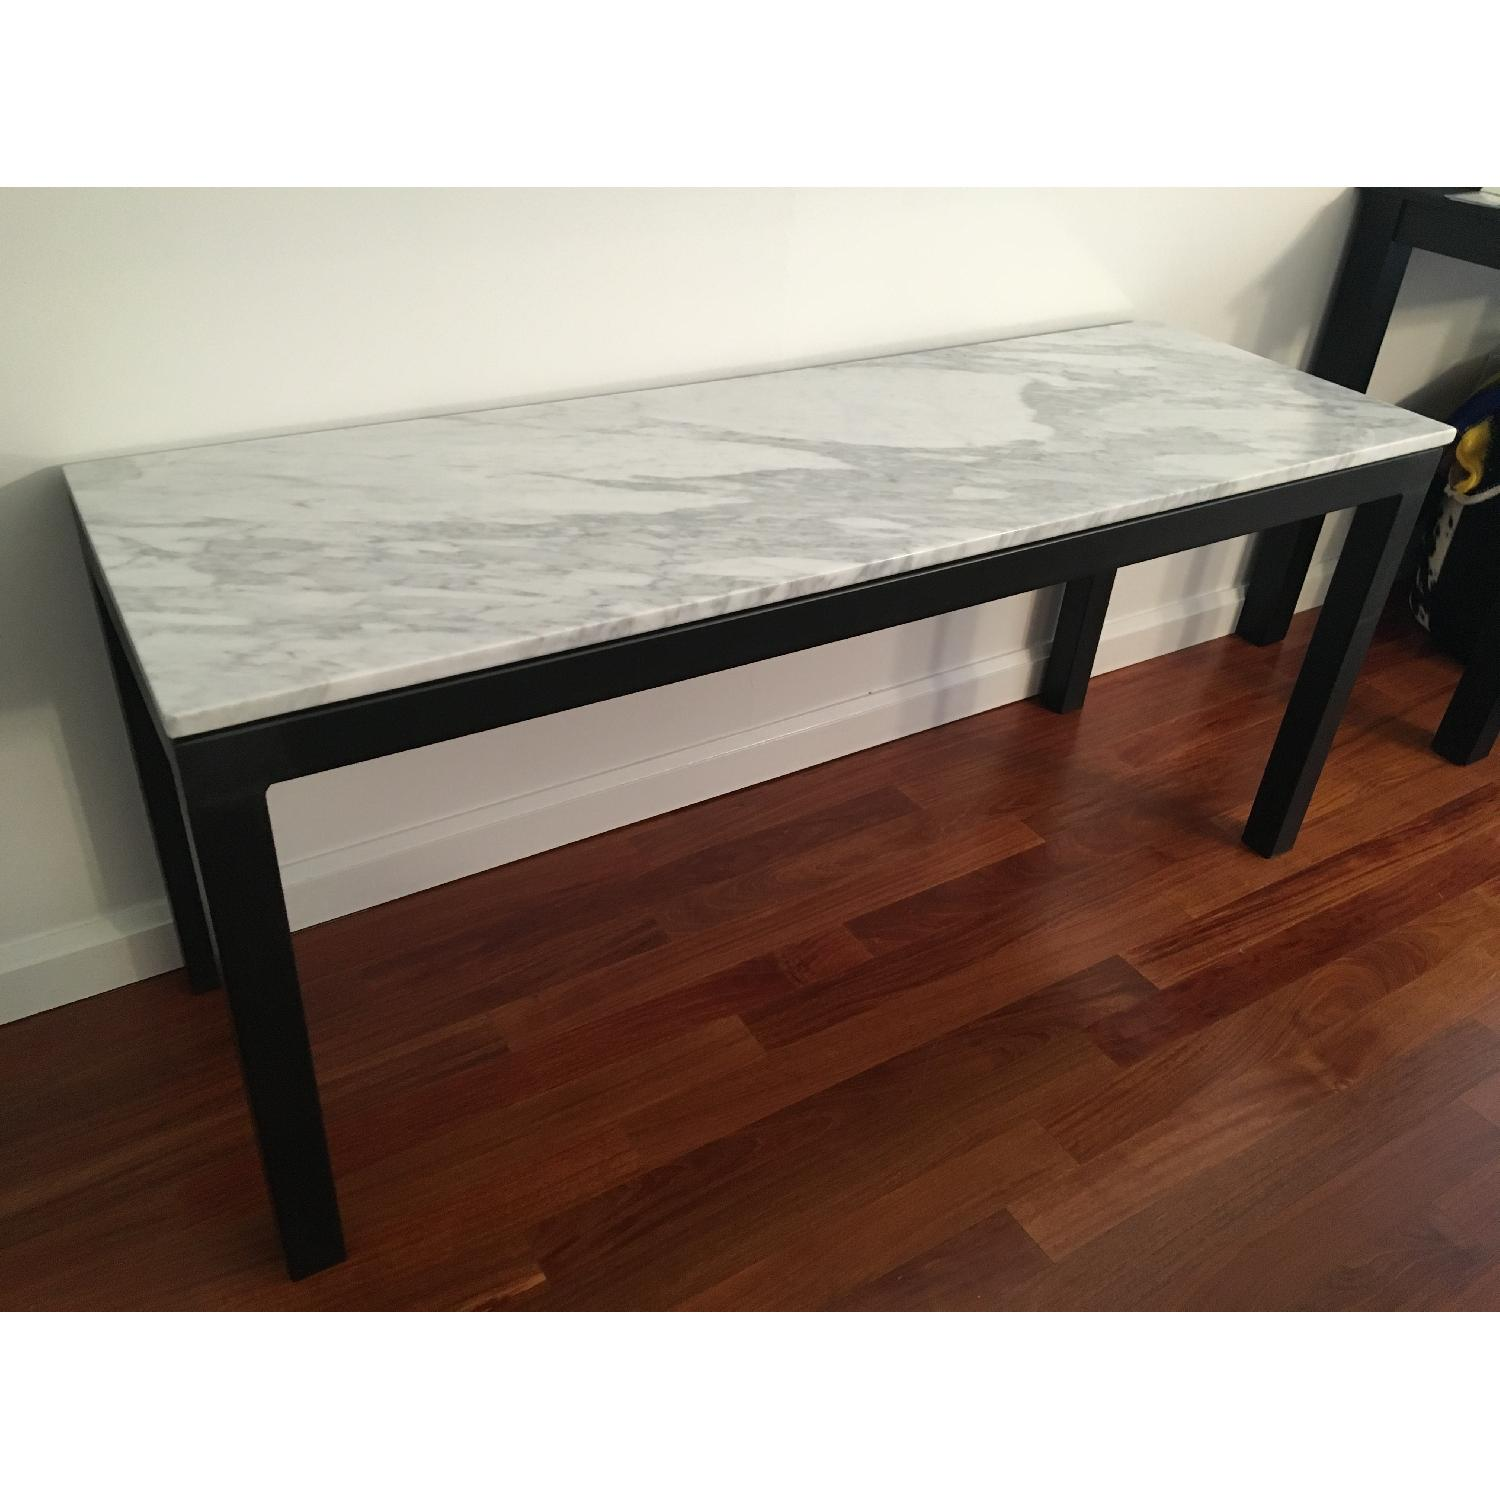 Room & Board Parsons Console Tables - image-1